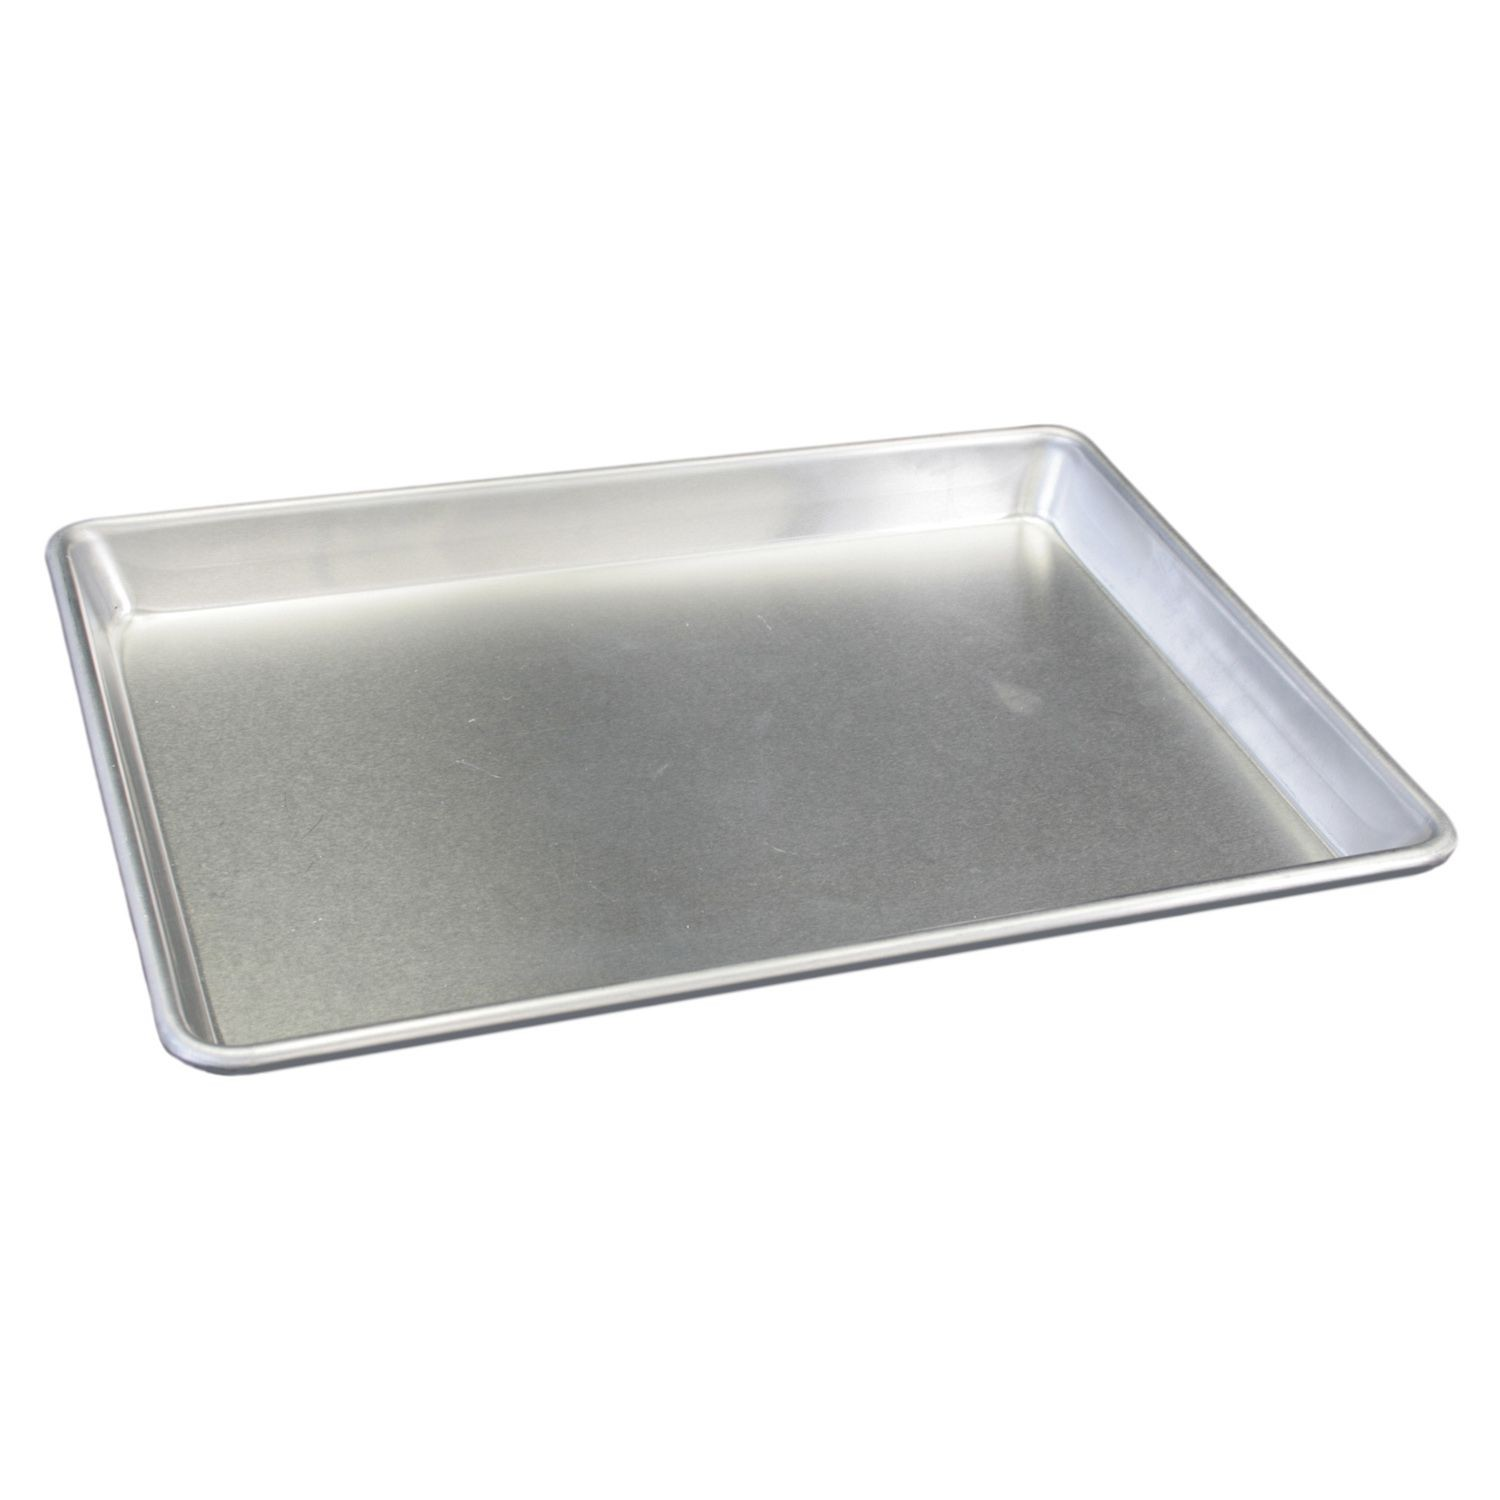 "Thunder Group ALSP1826H Full Size Aluminum Sheet Pan, 16 Gauge 18"" x 26"" - 1 doz"